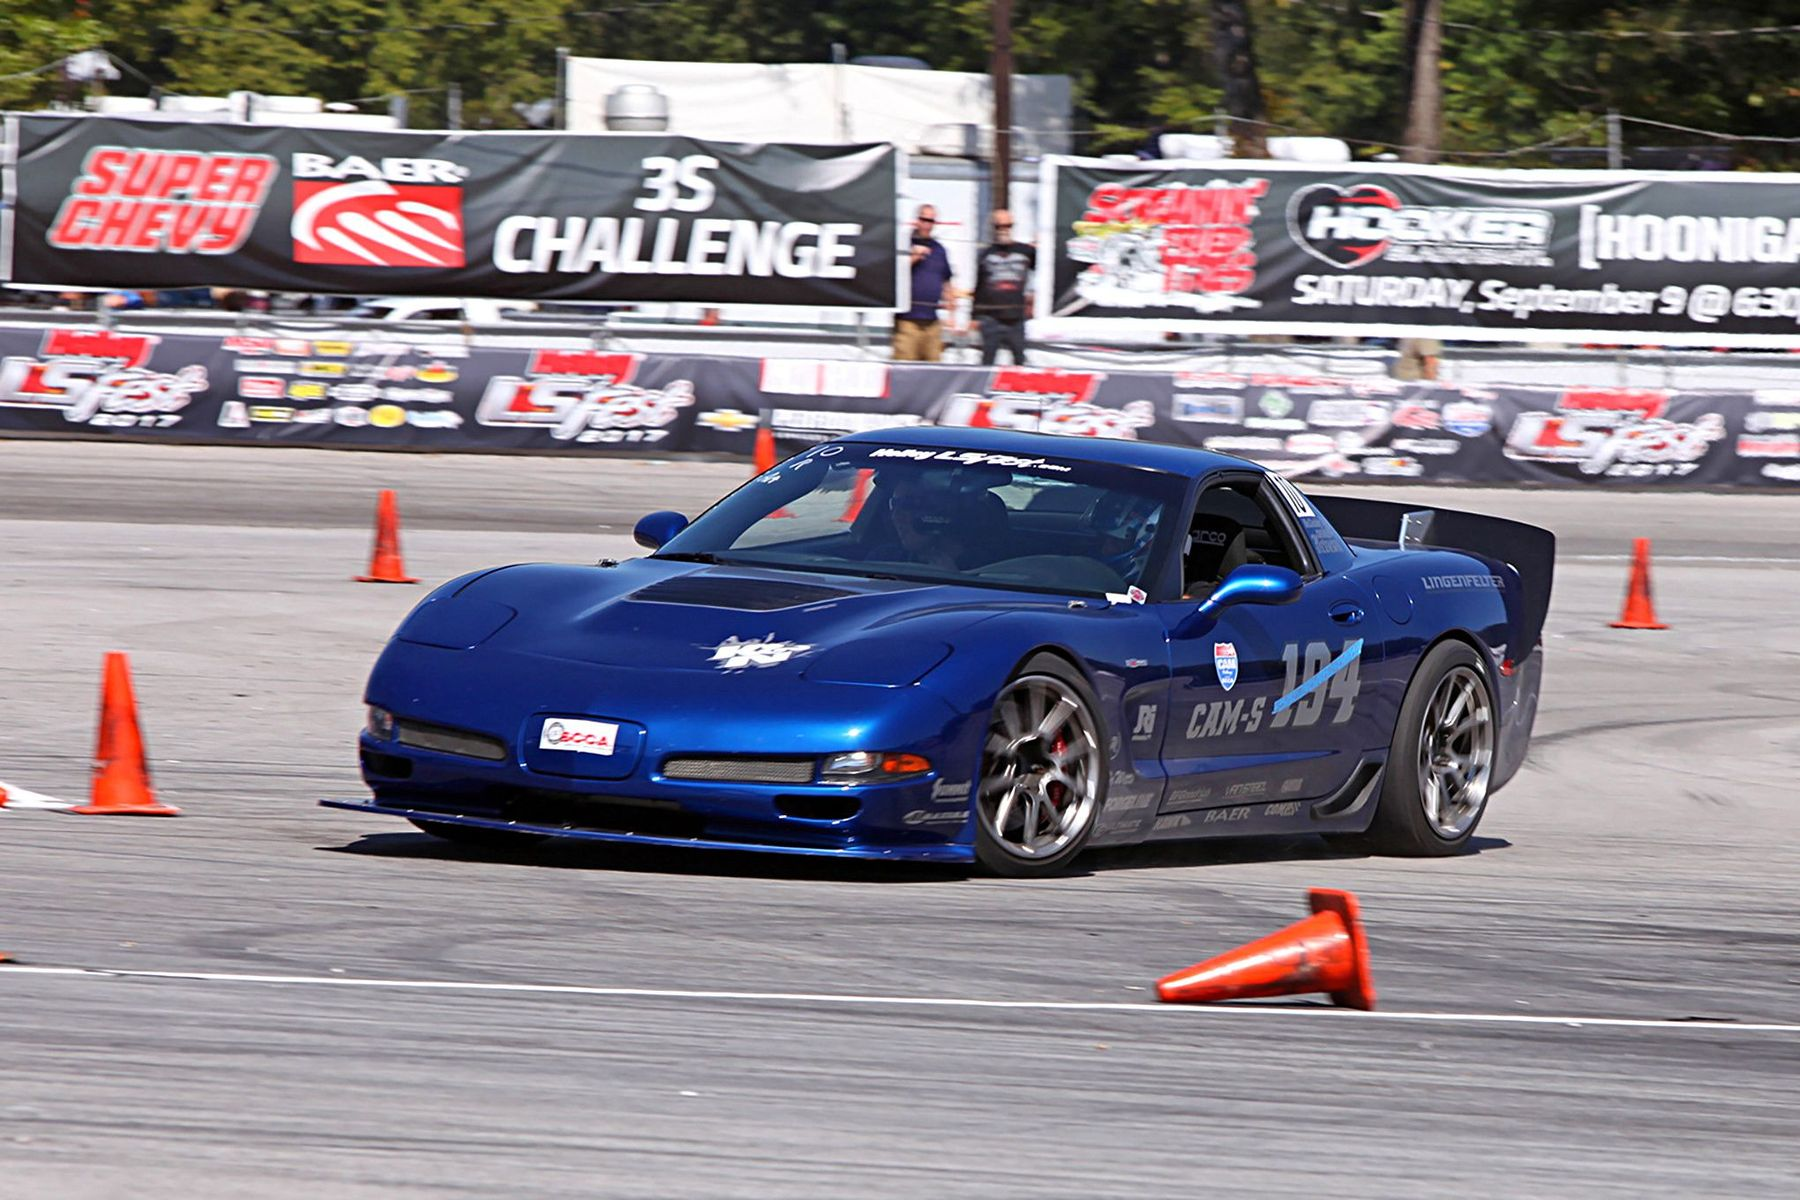 2003 Chevrolet Corvette Z06 | Danny Popp Wins High Noon Shootout at the 2017 LS Fest